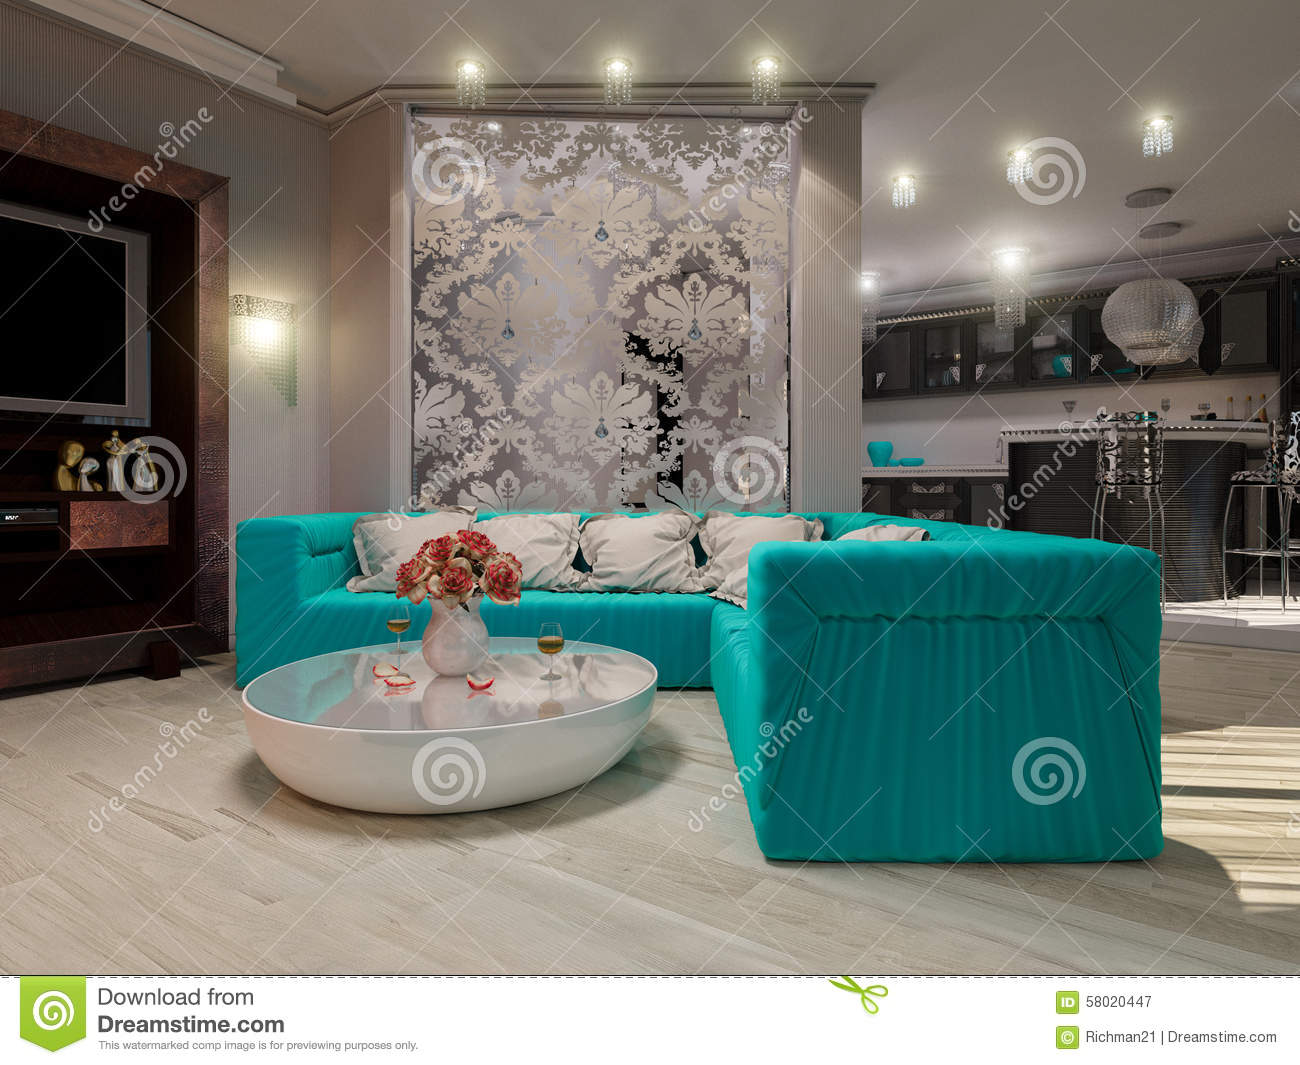 3D Illustration Of A Drawing Room And Kitchen In Style Of An Art ...